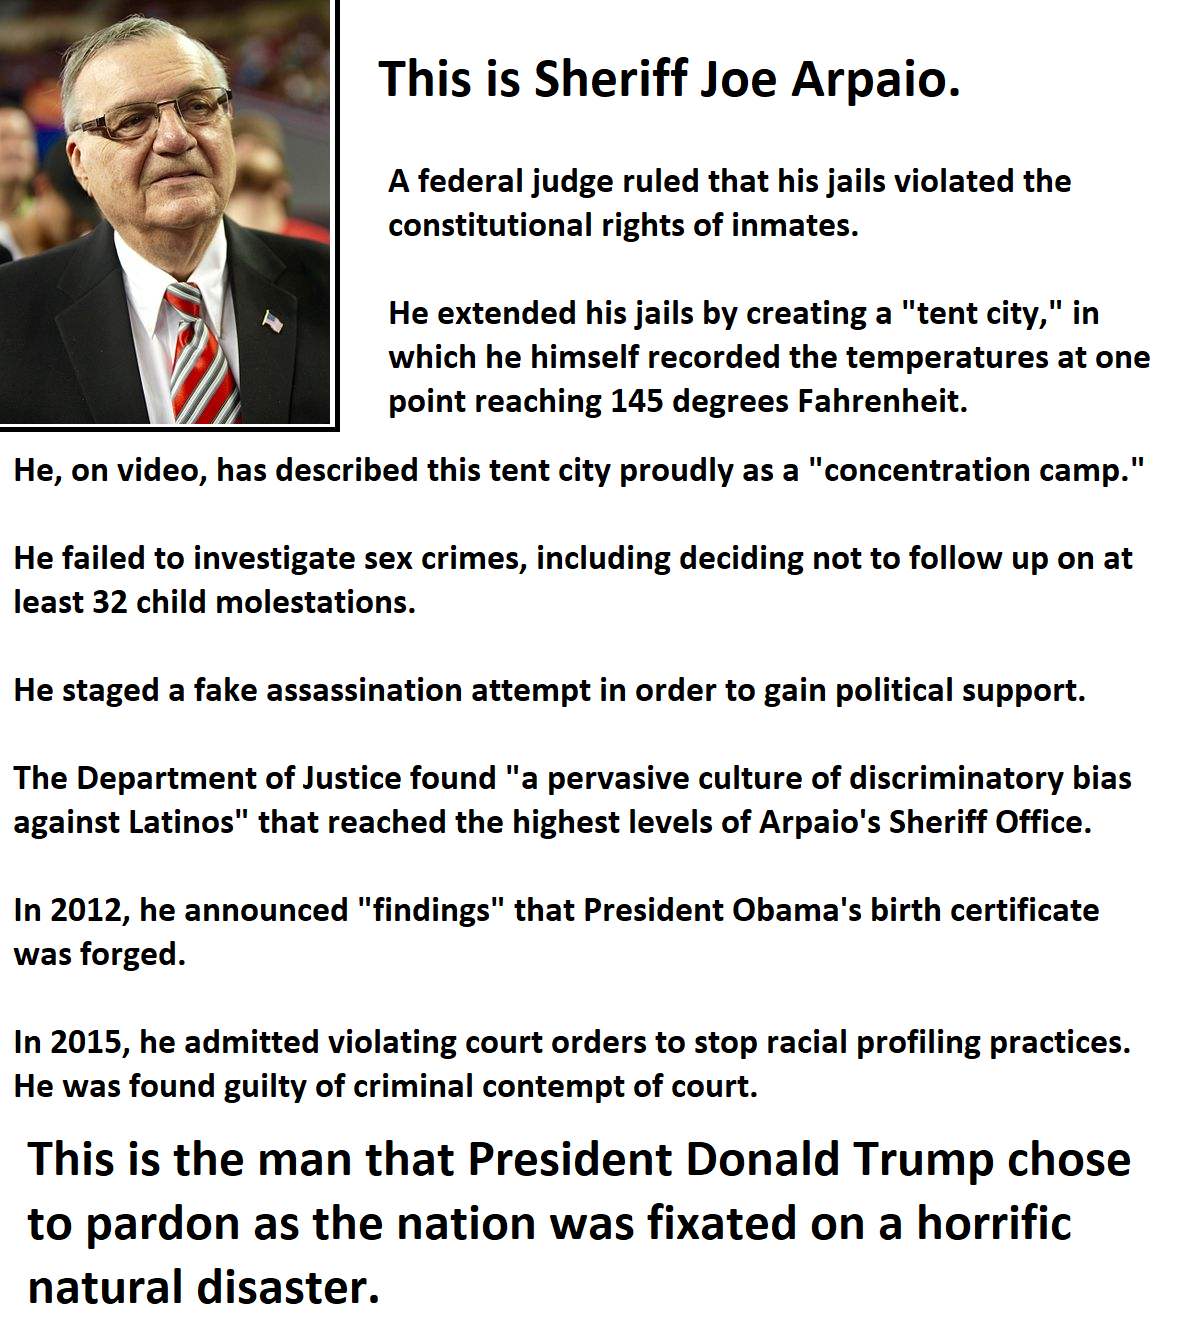 This is Sheriff Joe Arpaio